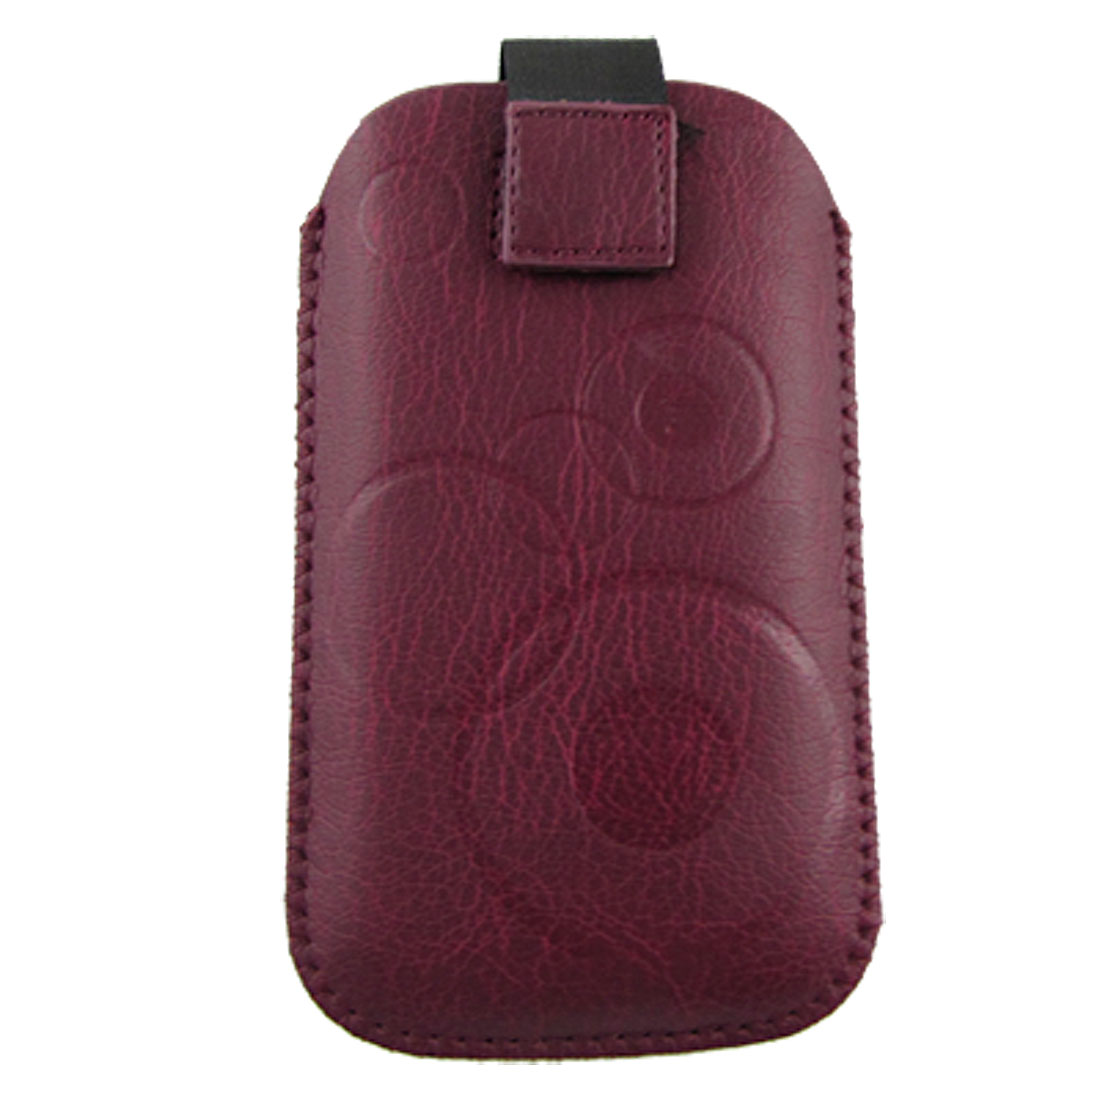 Faux Leather Circle Pattern Pull Up Pouch for Nokia5800